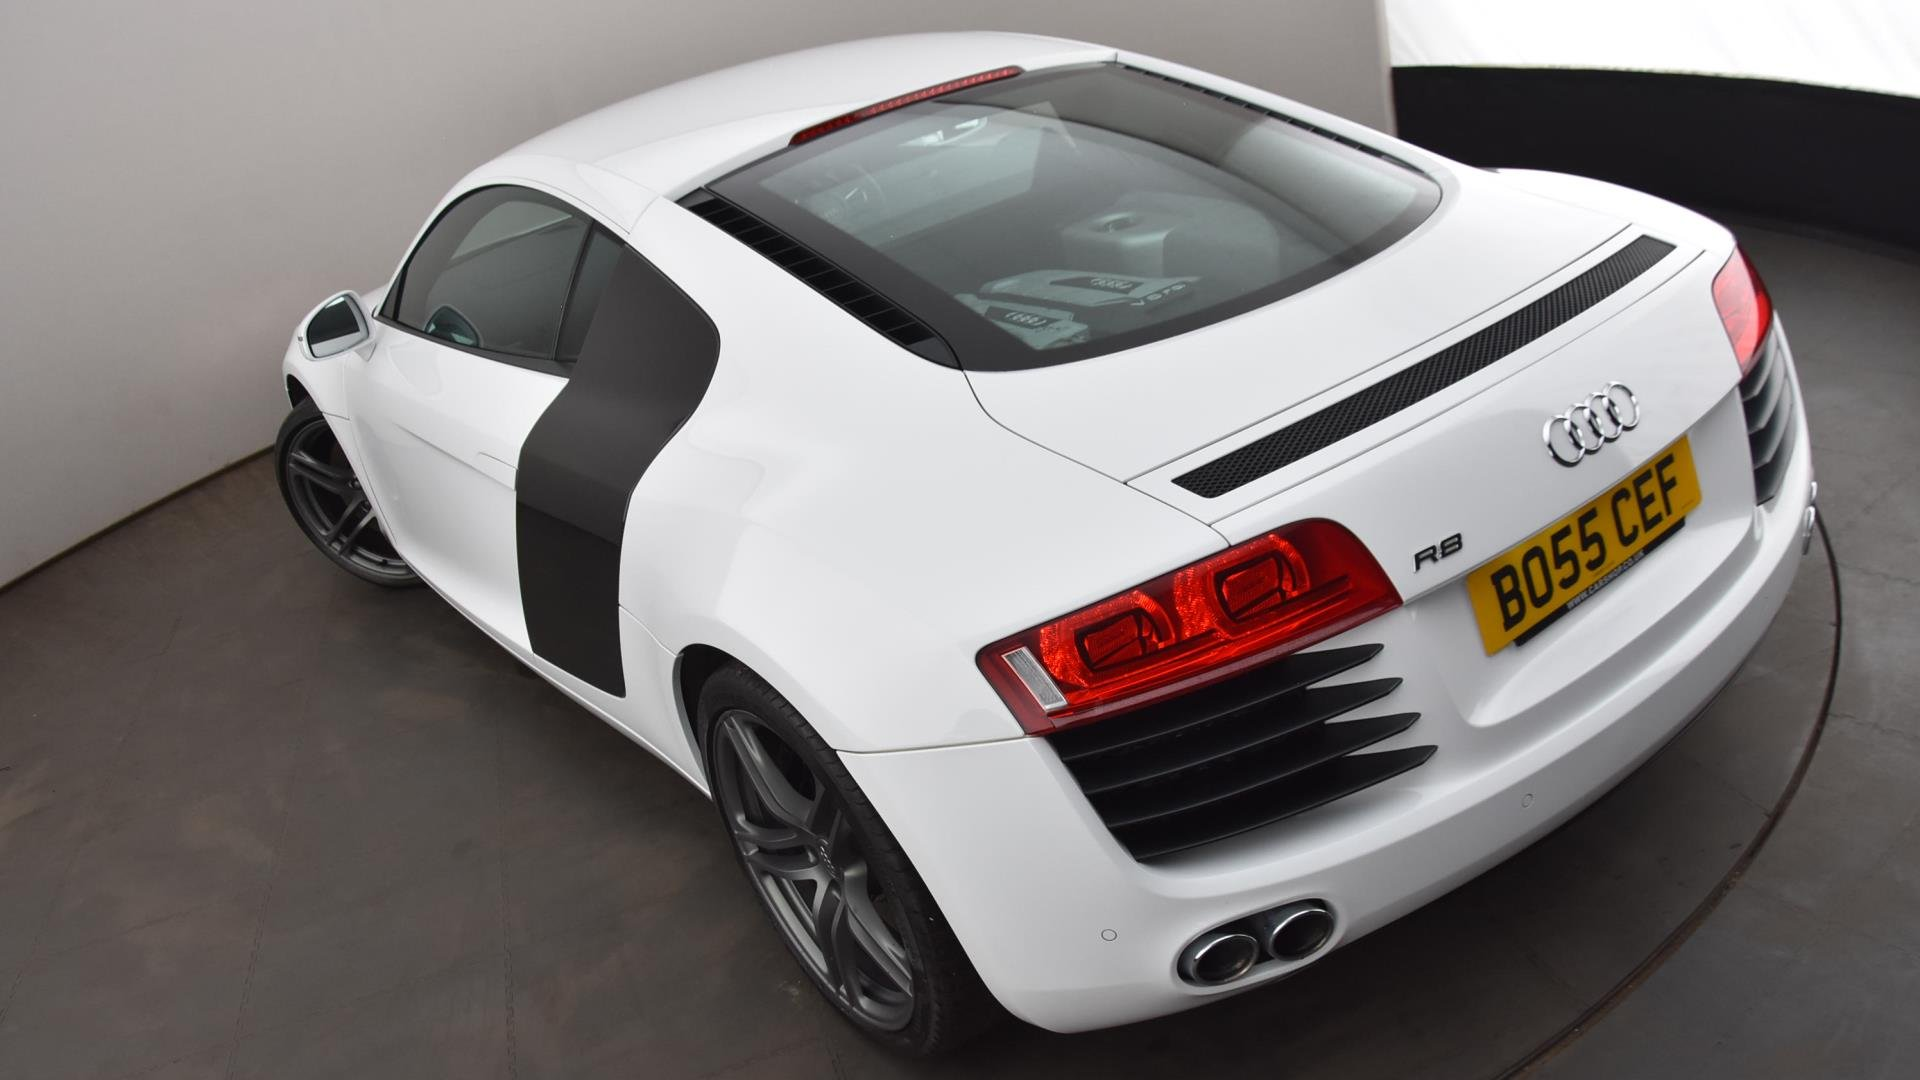 BO55CEF-used-AUDI-R8-COUPE-4-2-FSI-430-Quattro-2dr-Petrol-Manual-WHITE-2012-highlights-HH-L-22.jpg